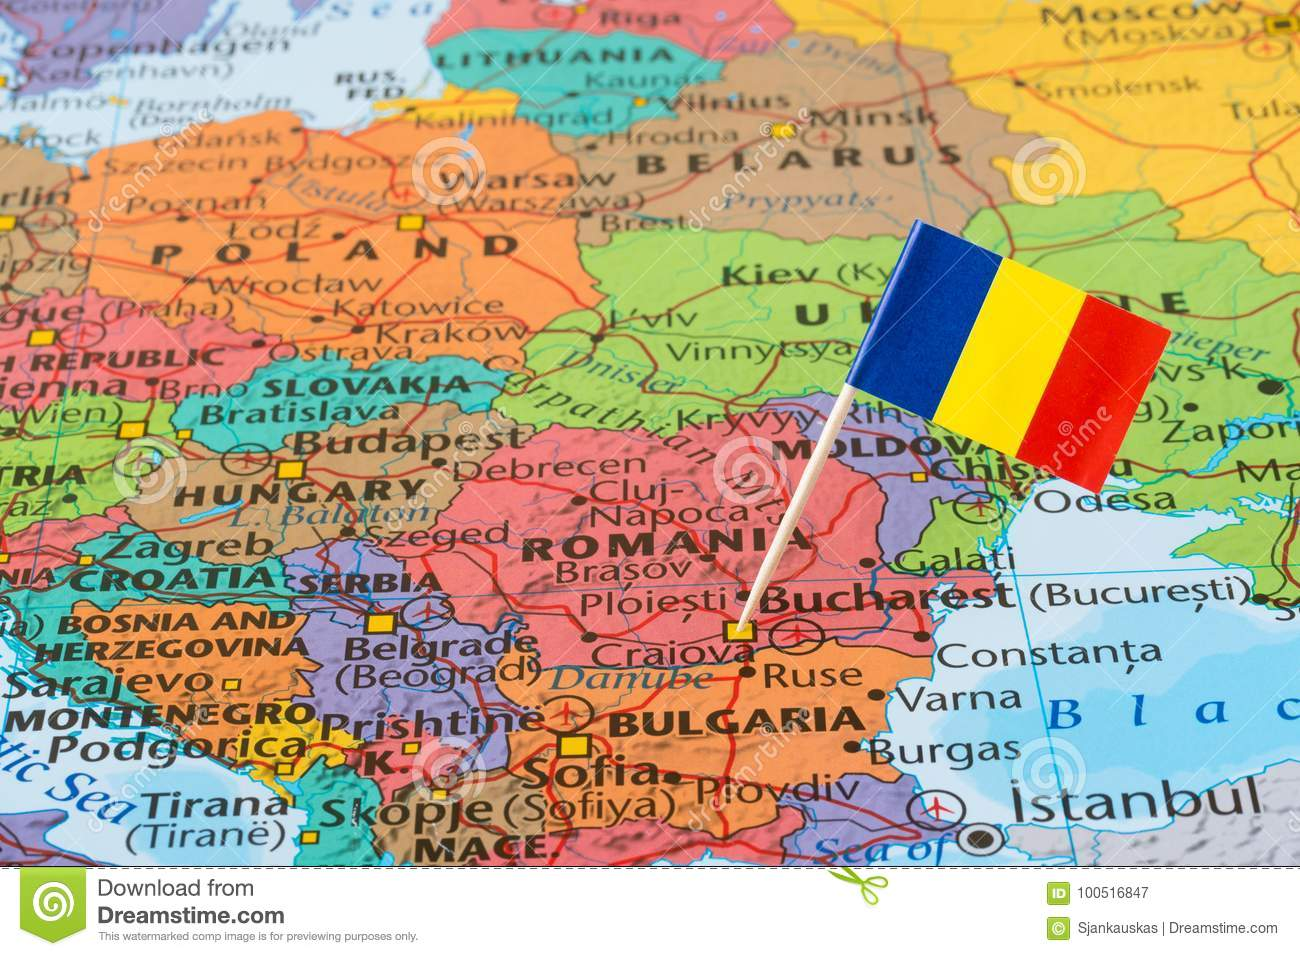 map-flag-romania-sovereign-state-located-southeastern-europe-romania-map-flag-pin-100516847.jpg